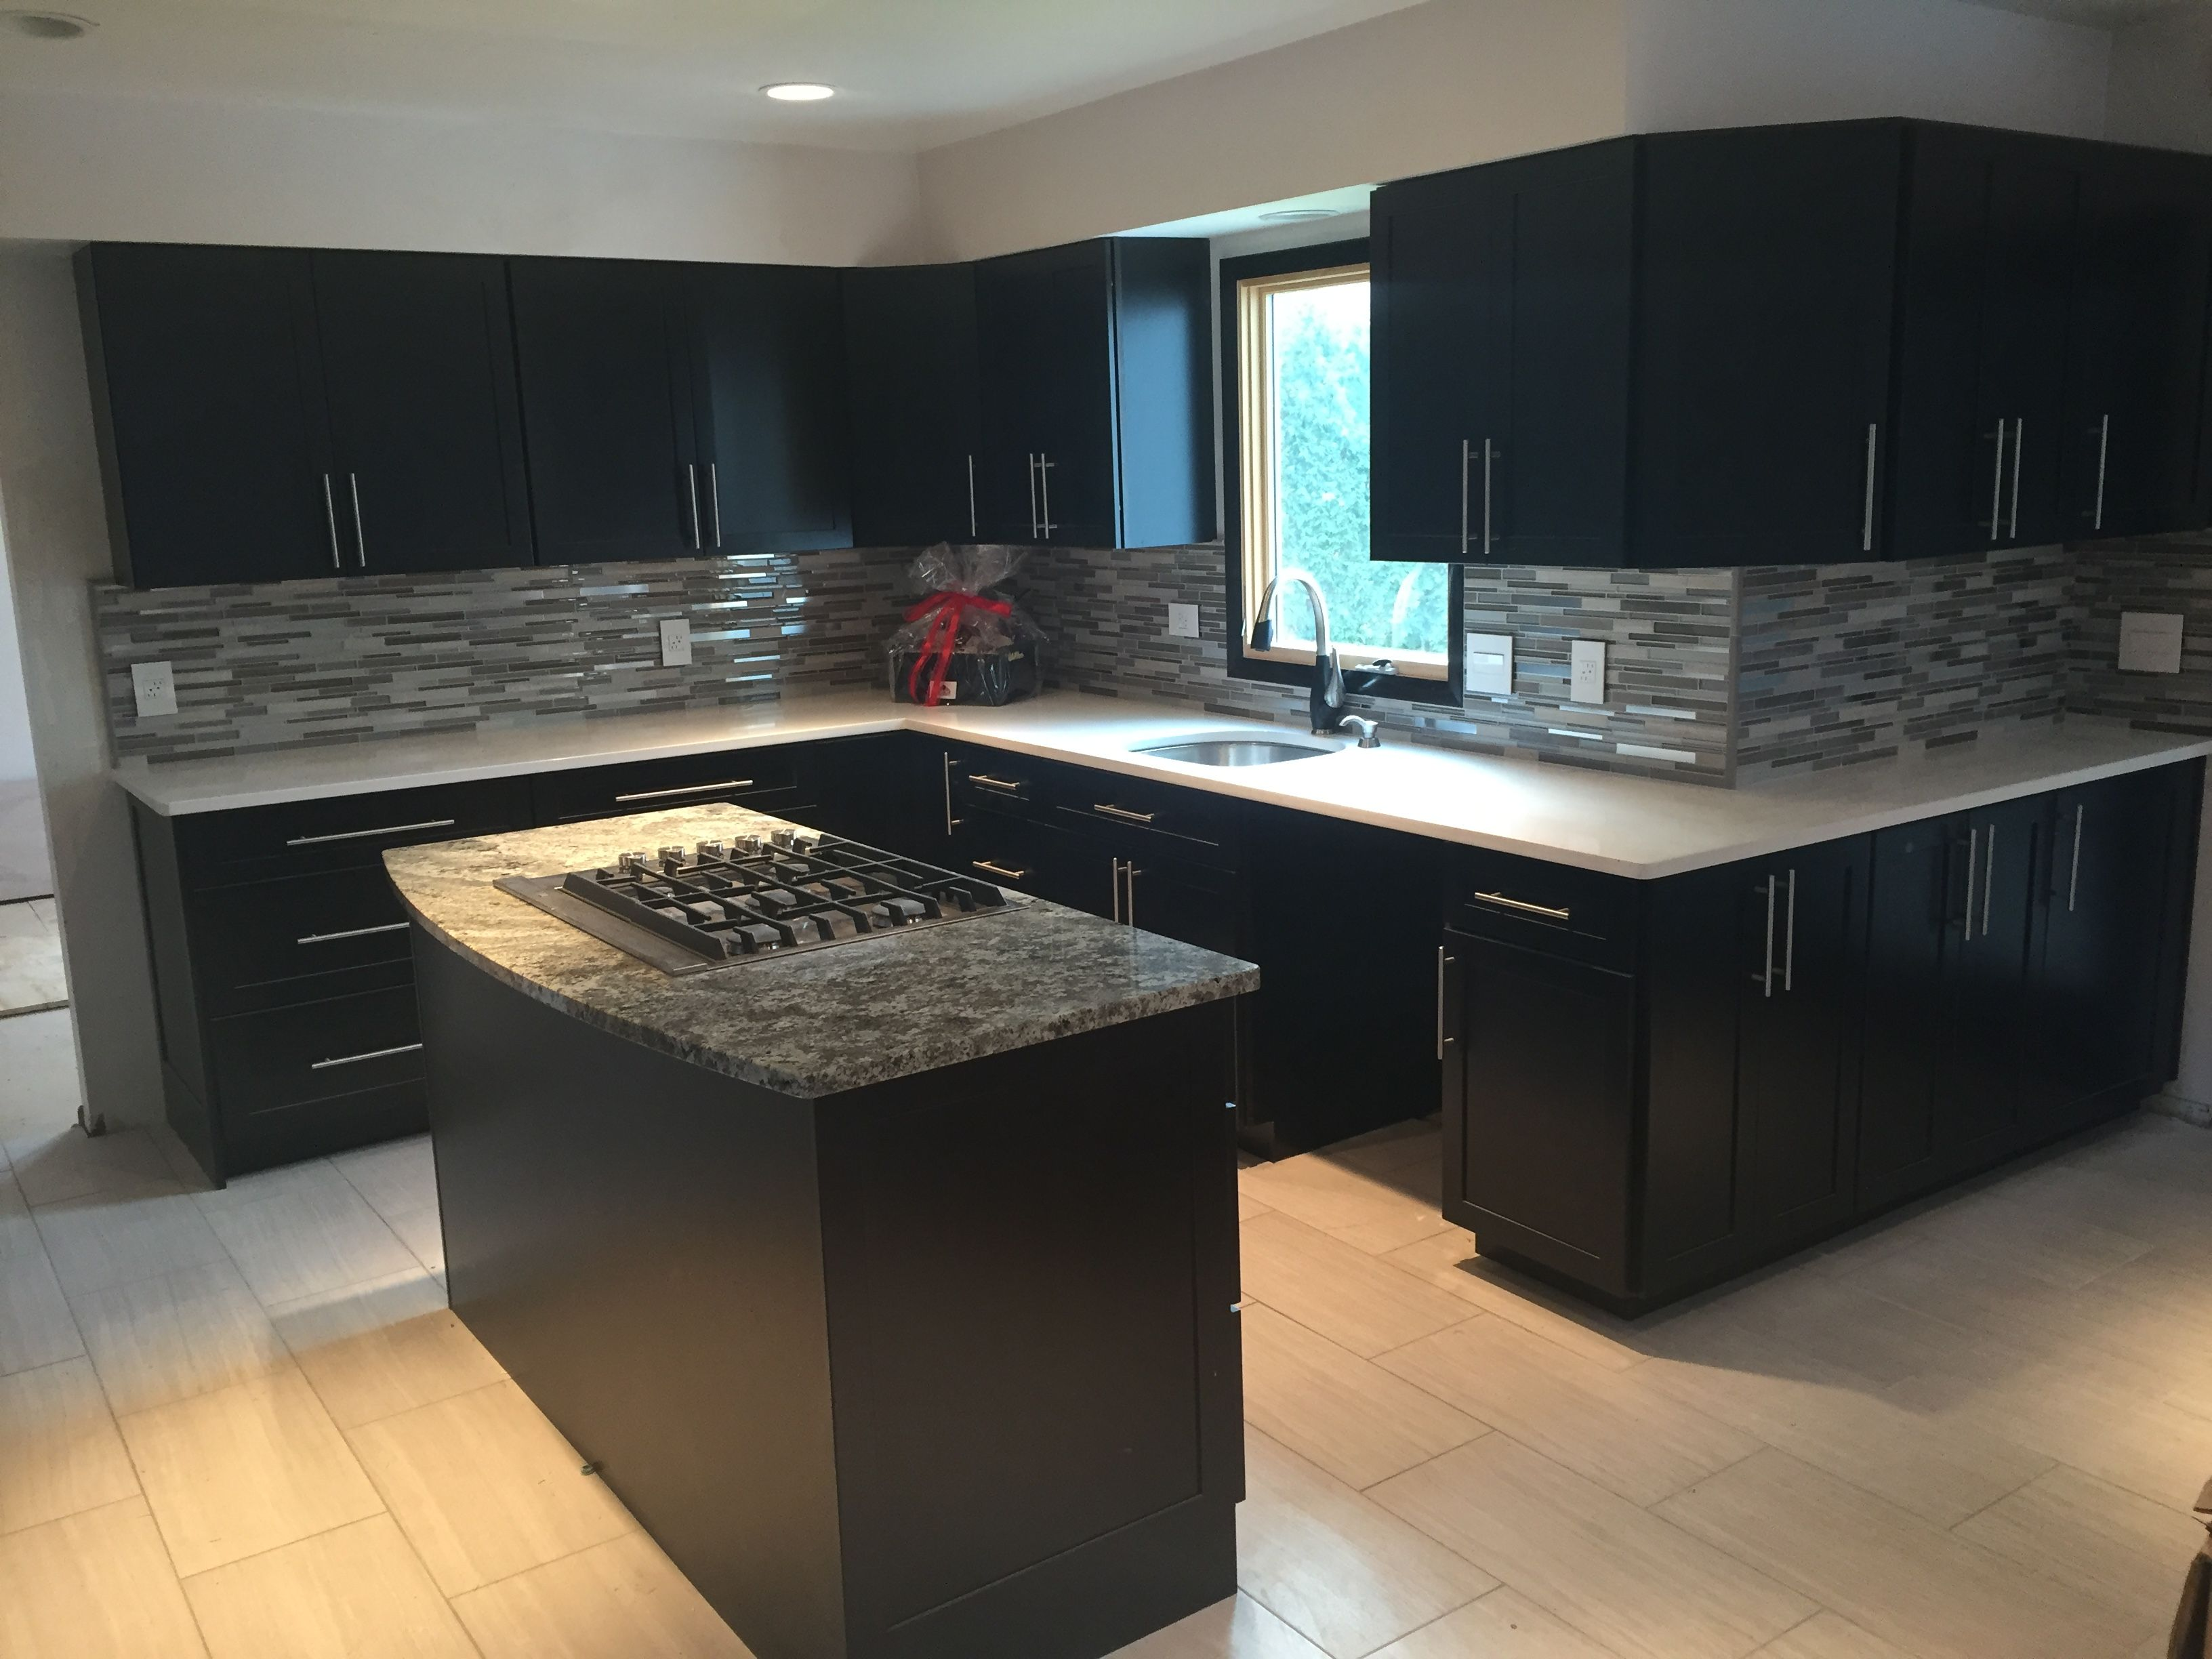 Modern Black And White Kitchen We Installed Ebony Kitchen Cabinets With Glass Mosaic T Kitchen Cabinets Makeover Glass Mosaic Tile Backsplash Kitchen Cabinets